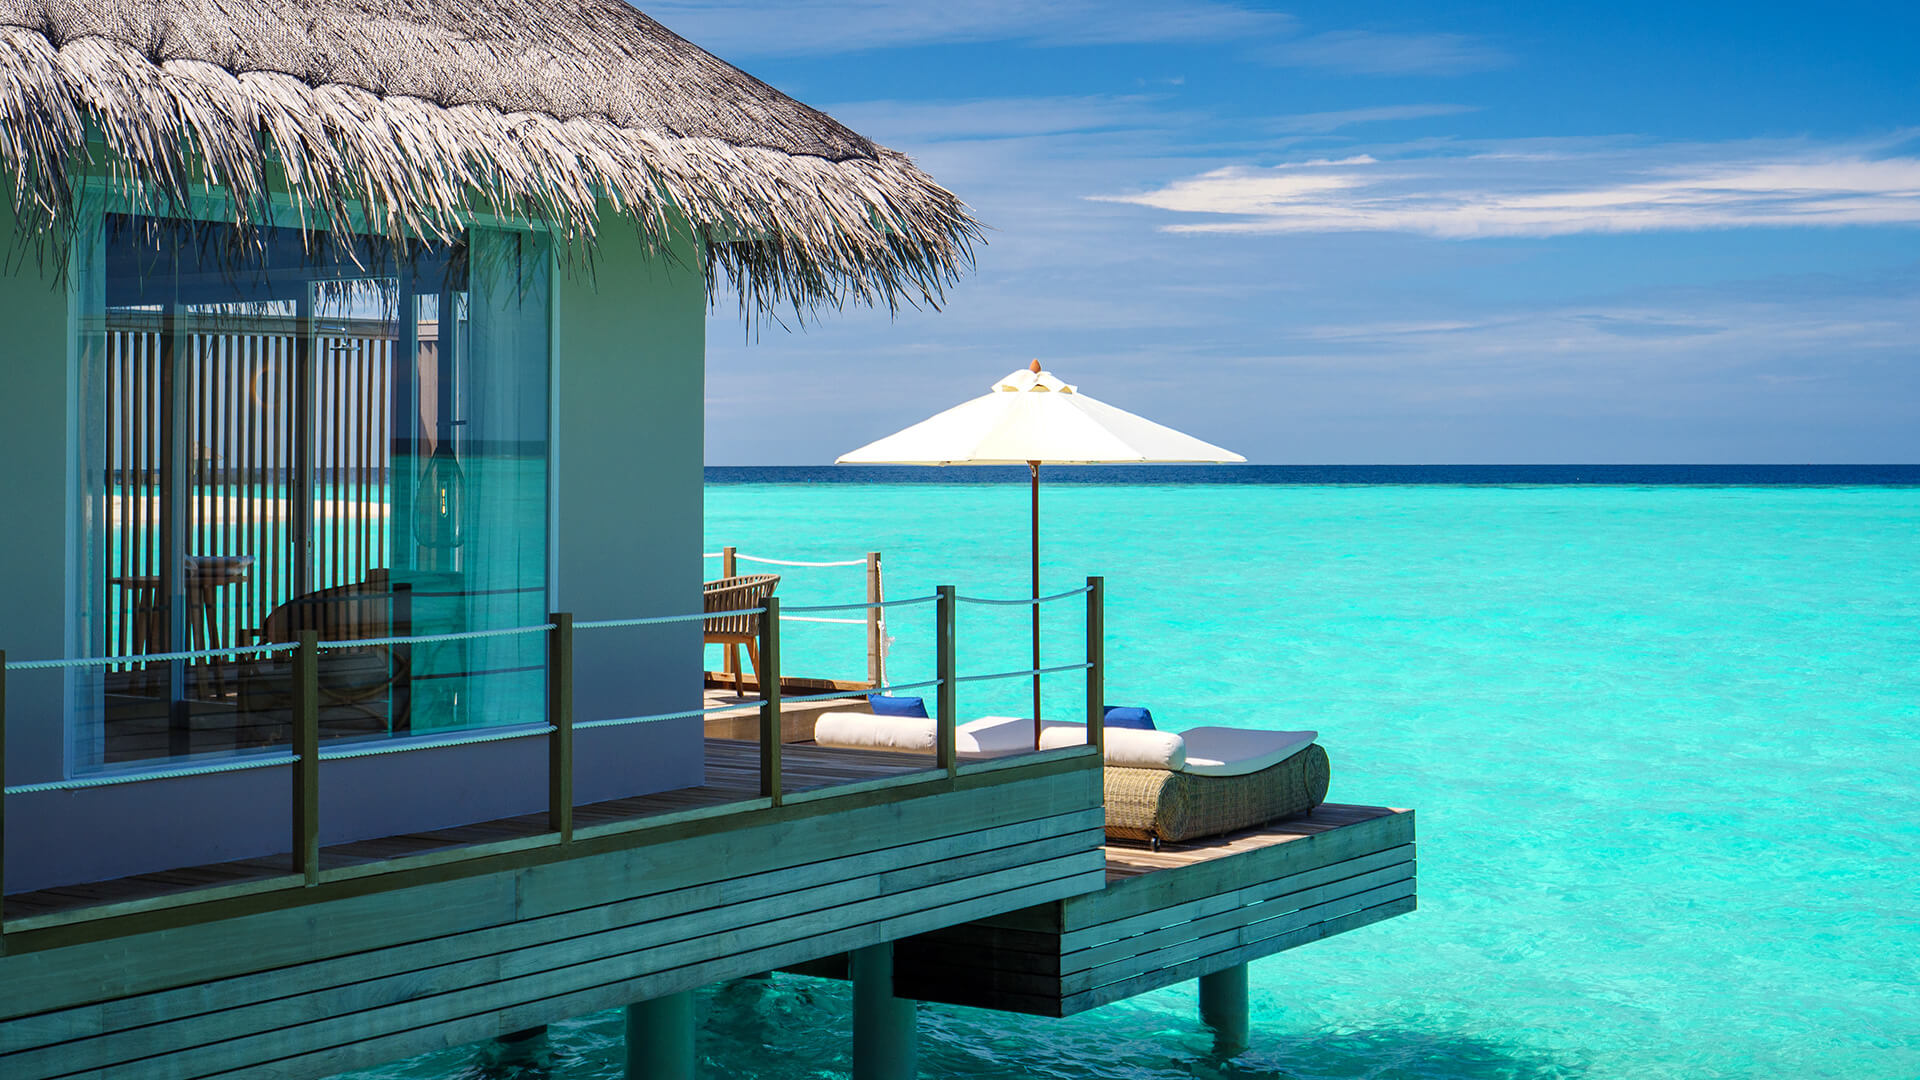 best places to see Baglioni_Resort_Maldives_06